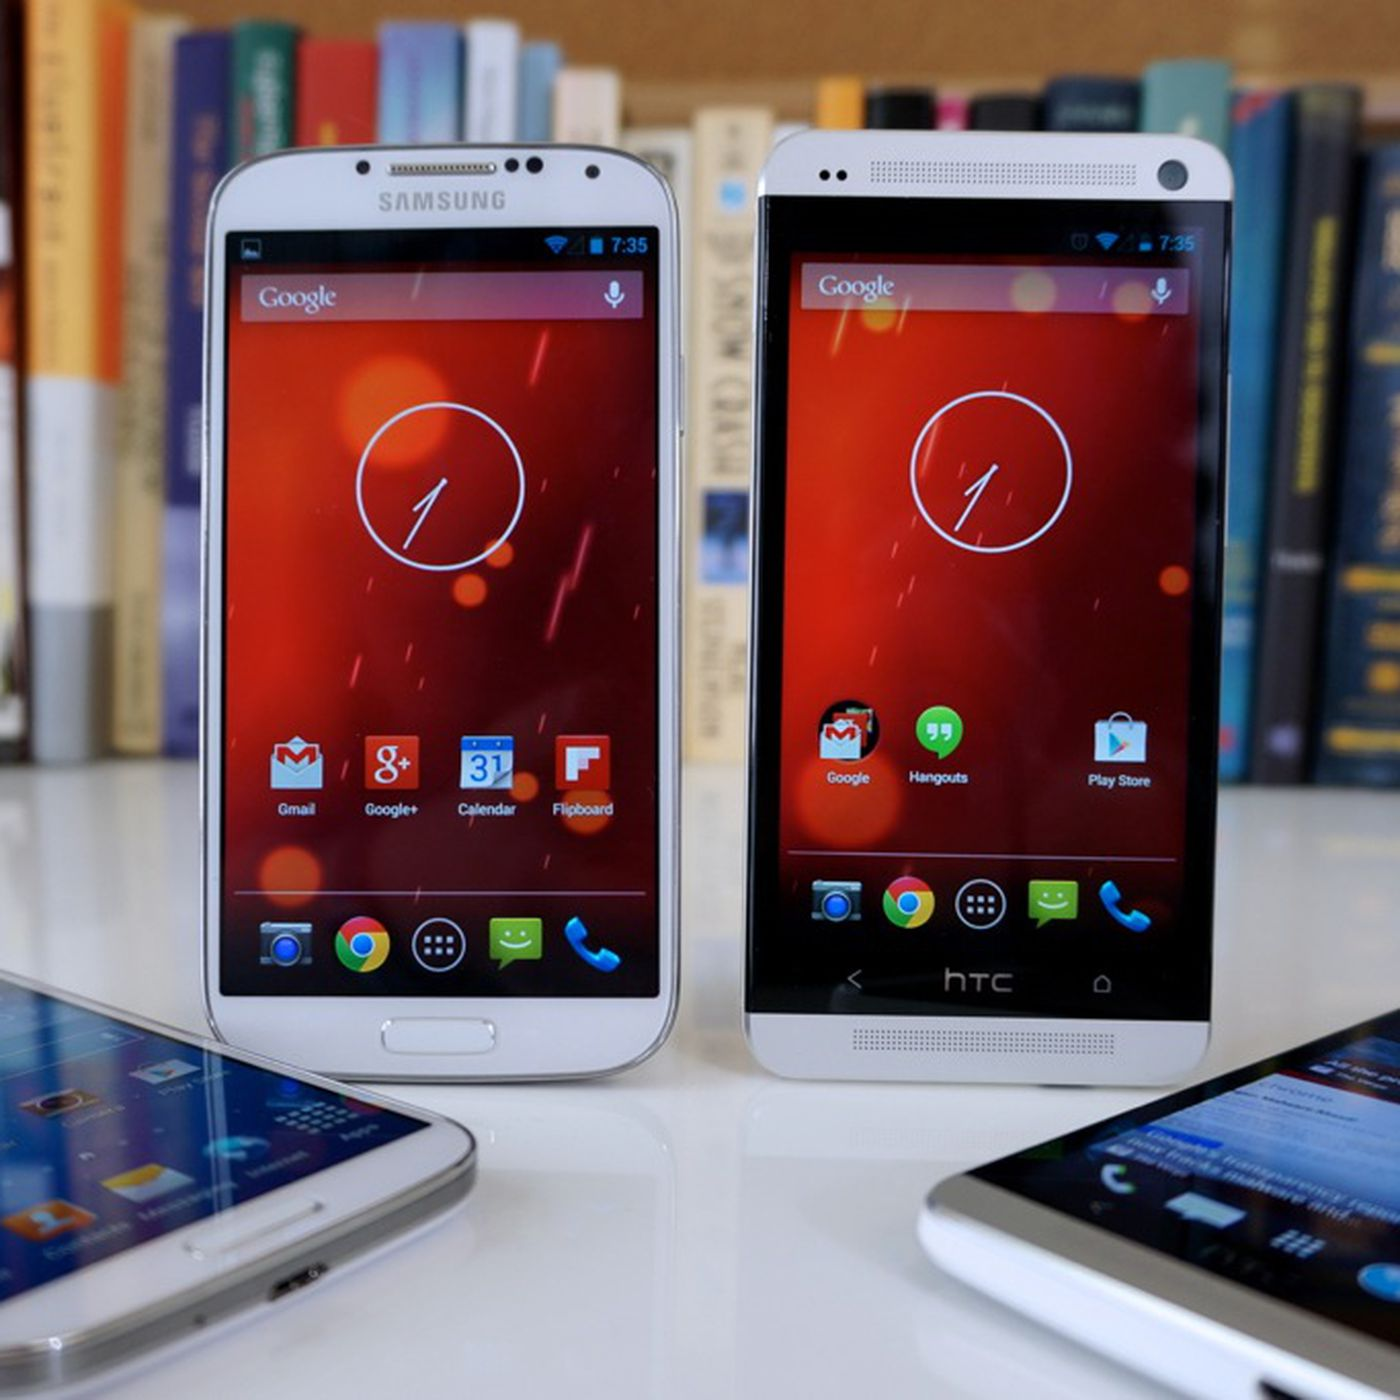 Pure Android: Samsung Galaxy S4 and HTC One 'Google Play editions